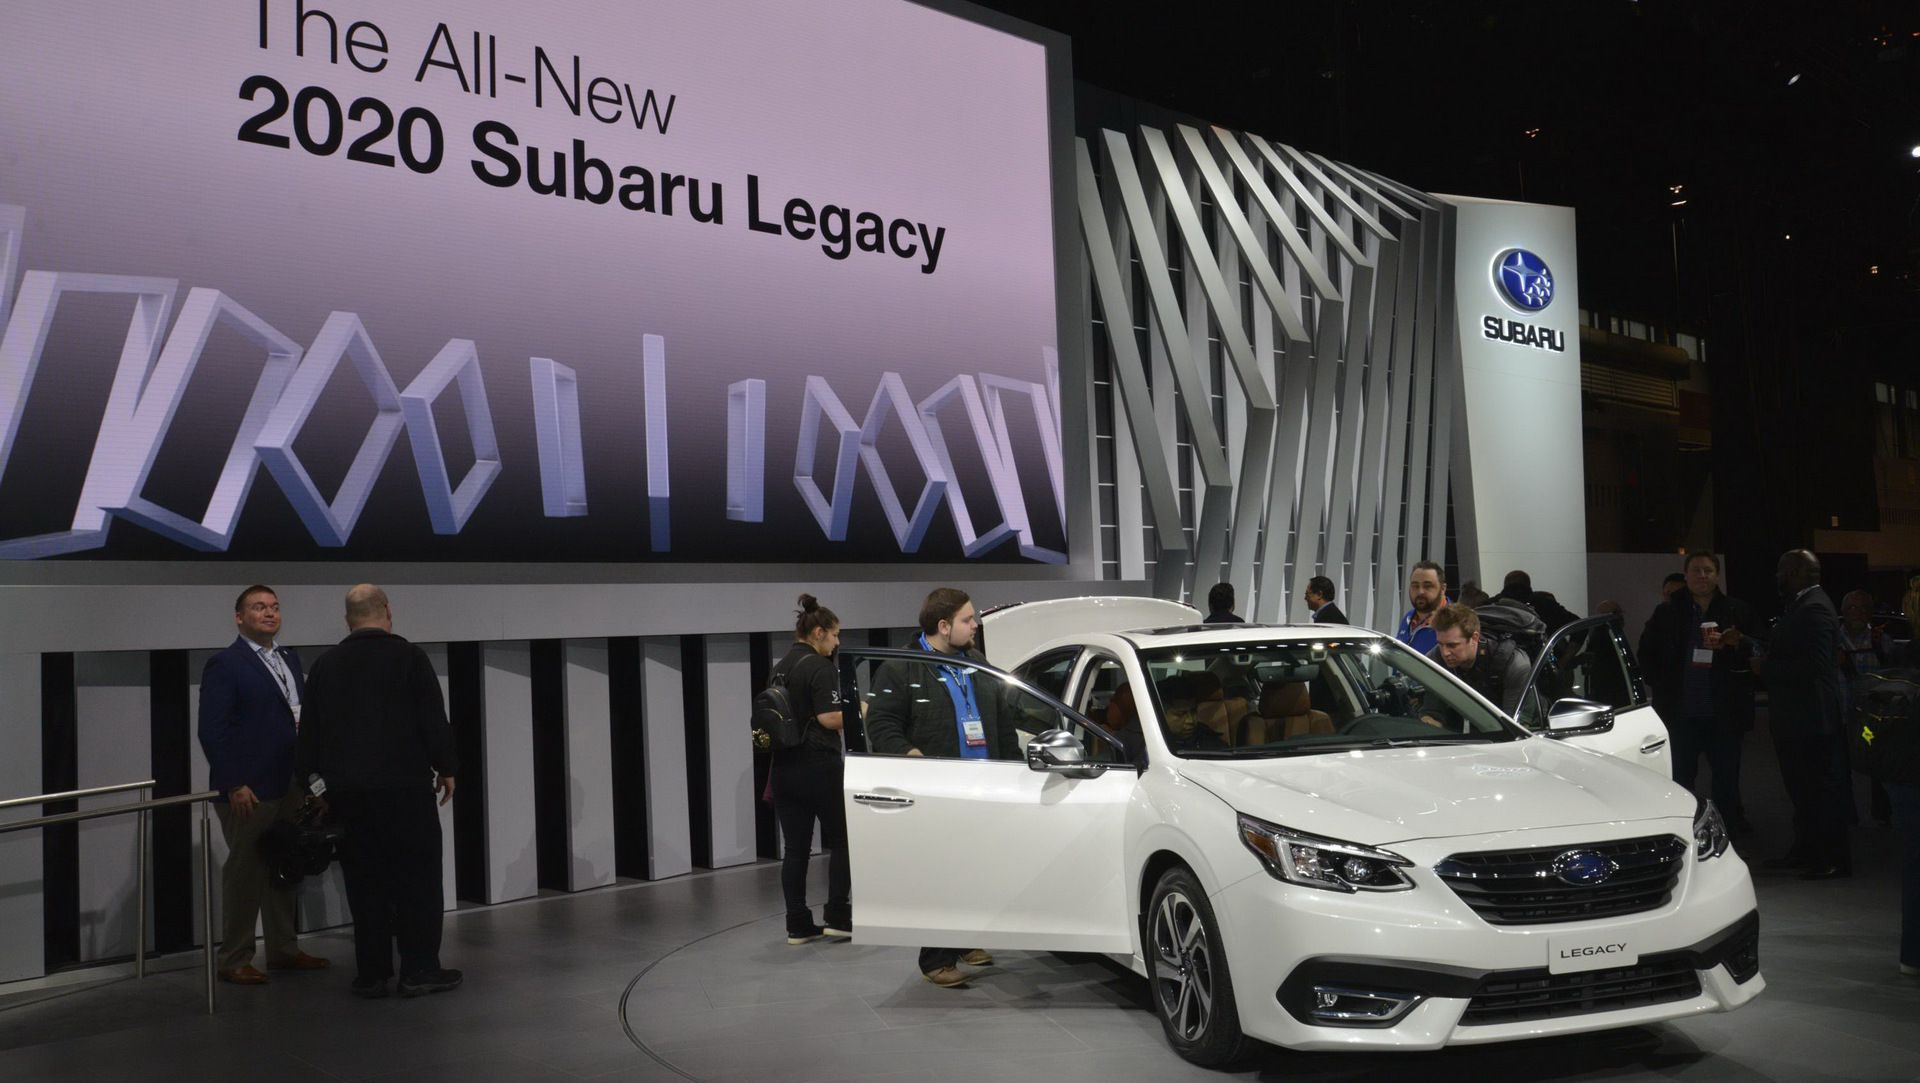 2020 Subaru Legacy Plays It Safe With Styling, Gains 260HP Turbo